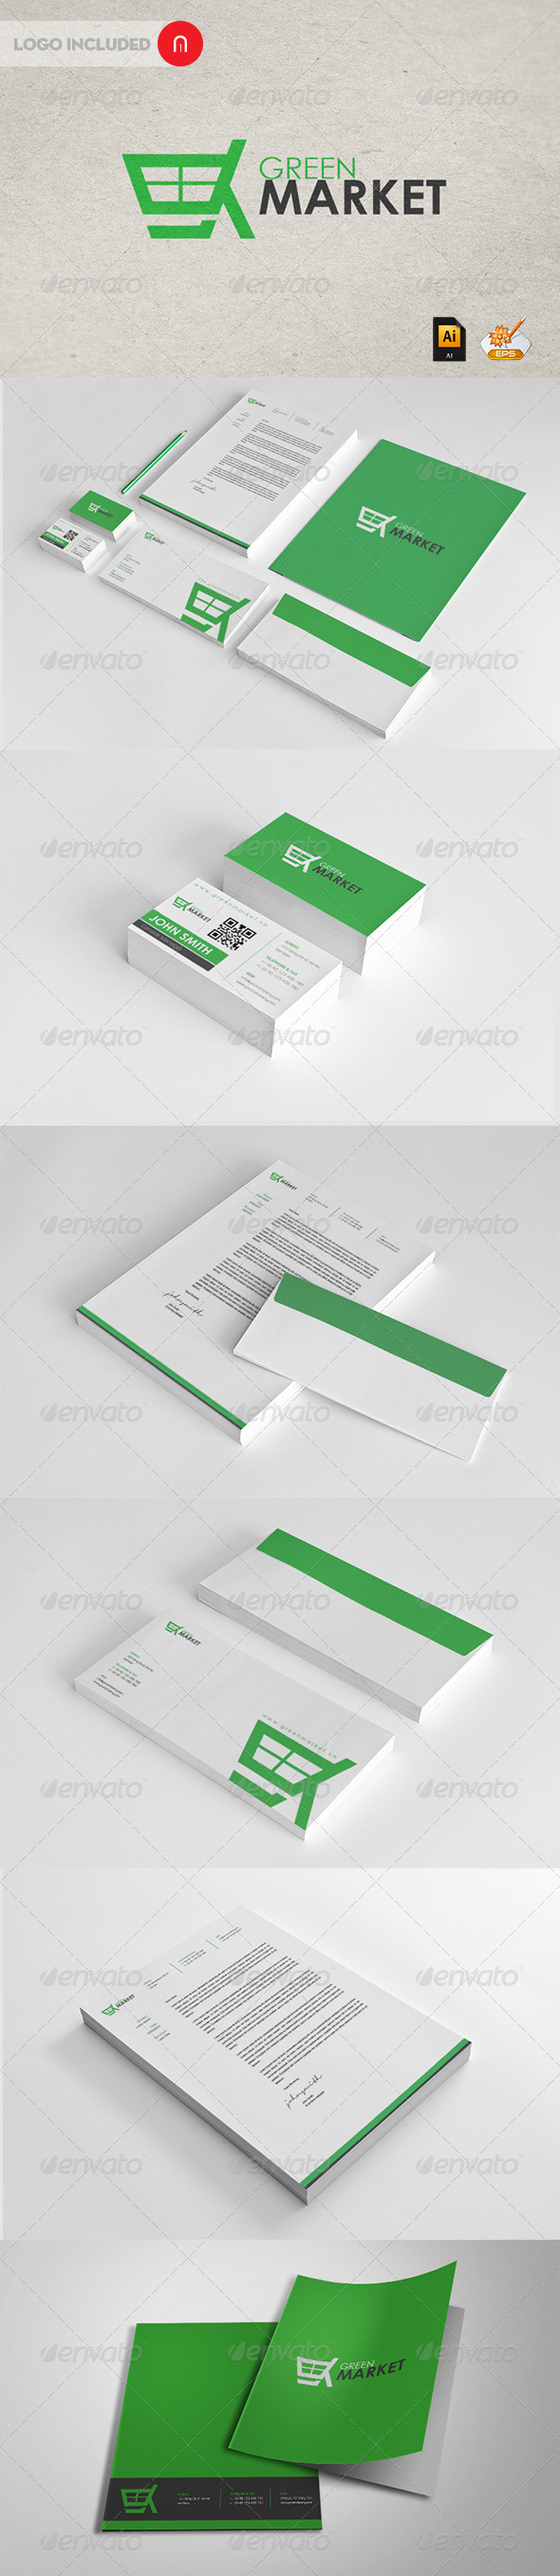 Green Market Corporate Identity - Stationery Print Templates